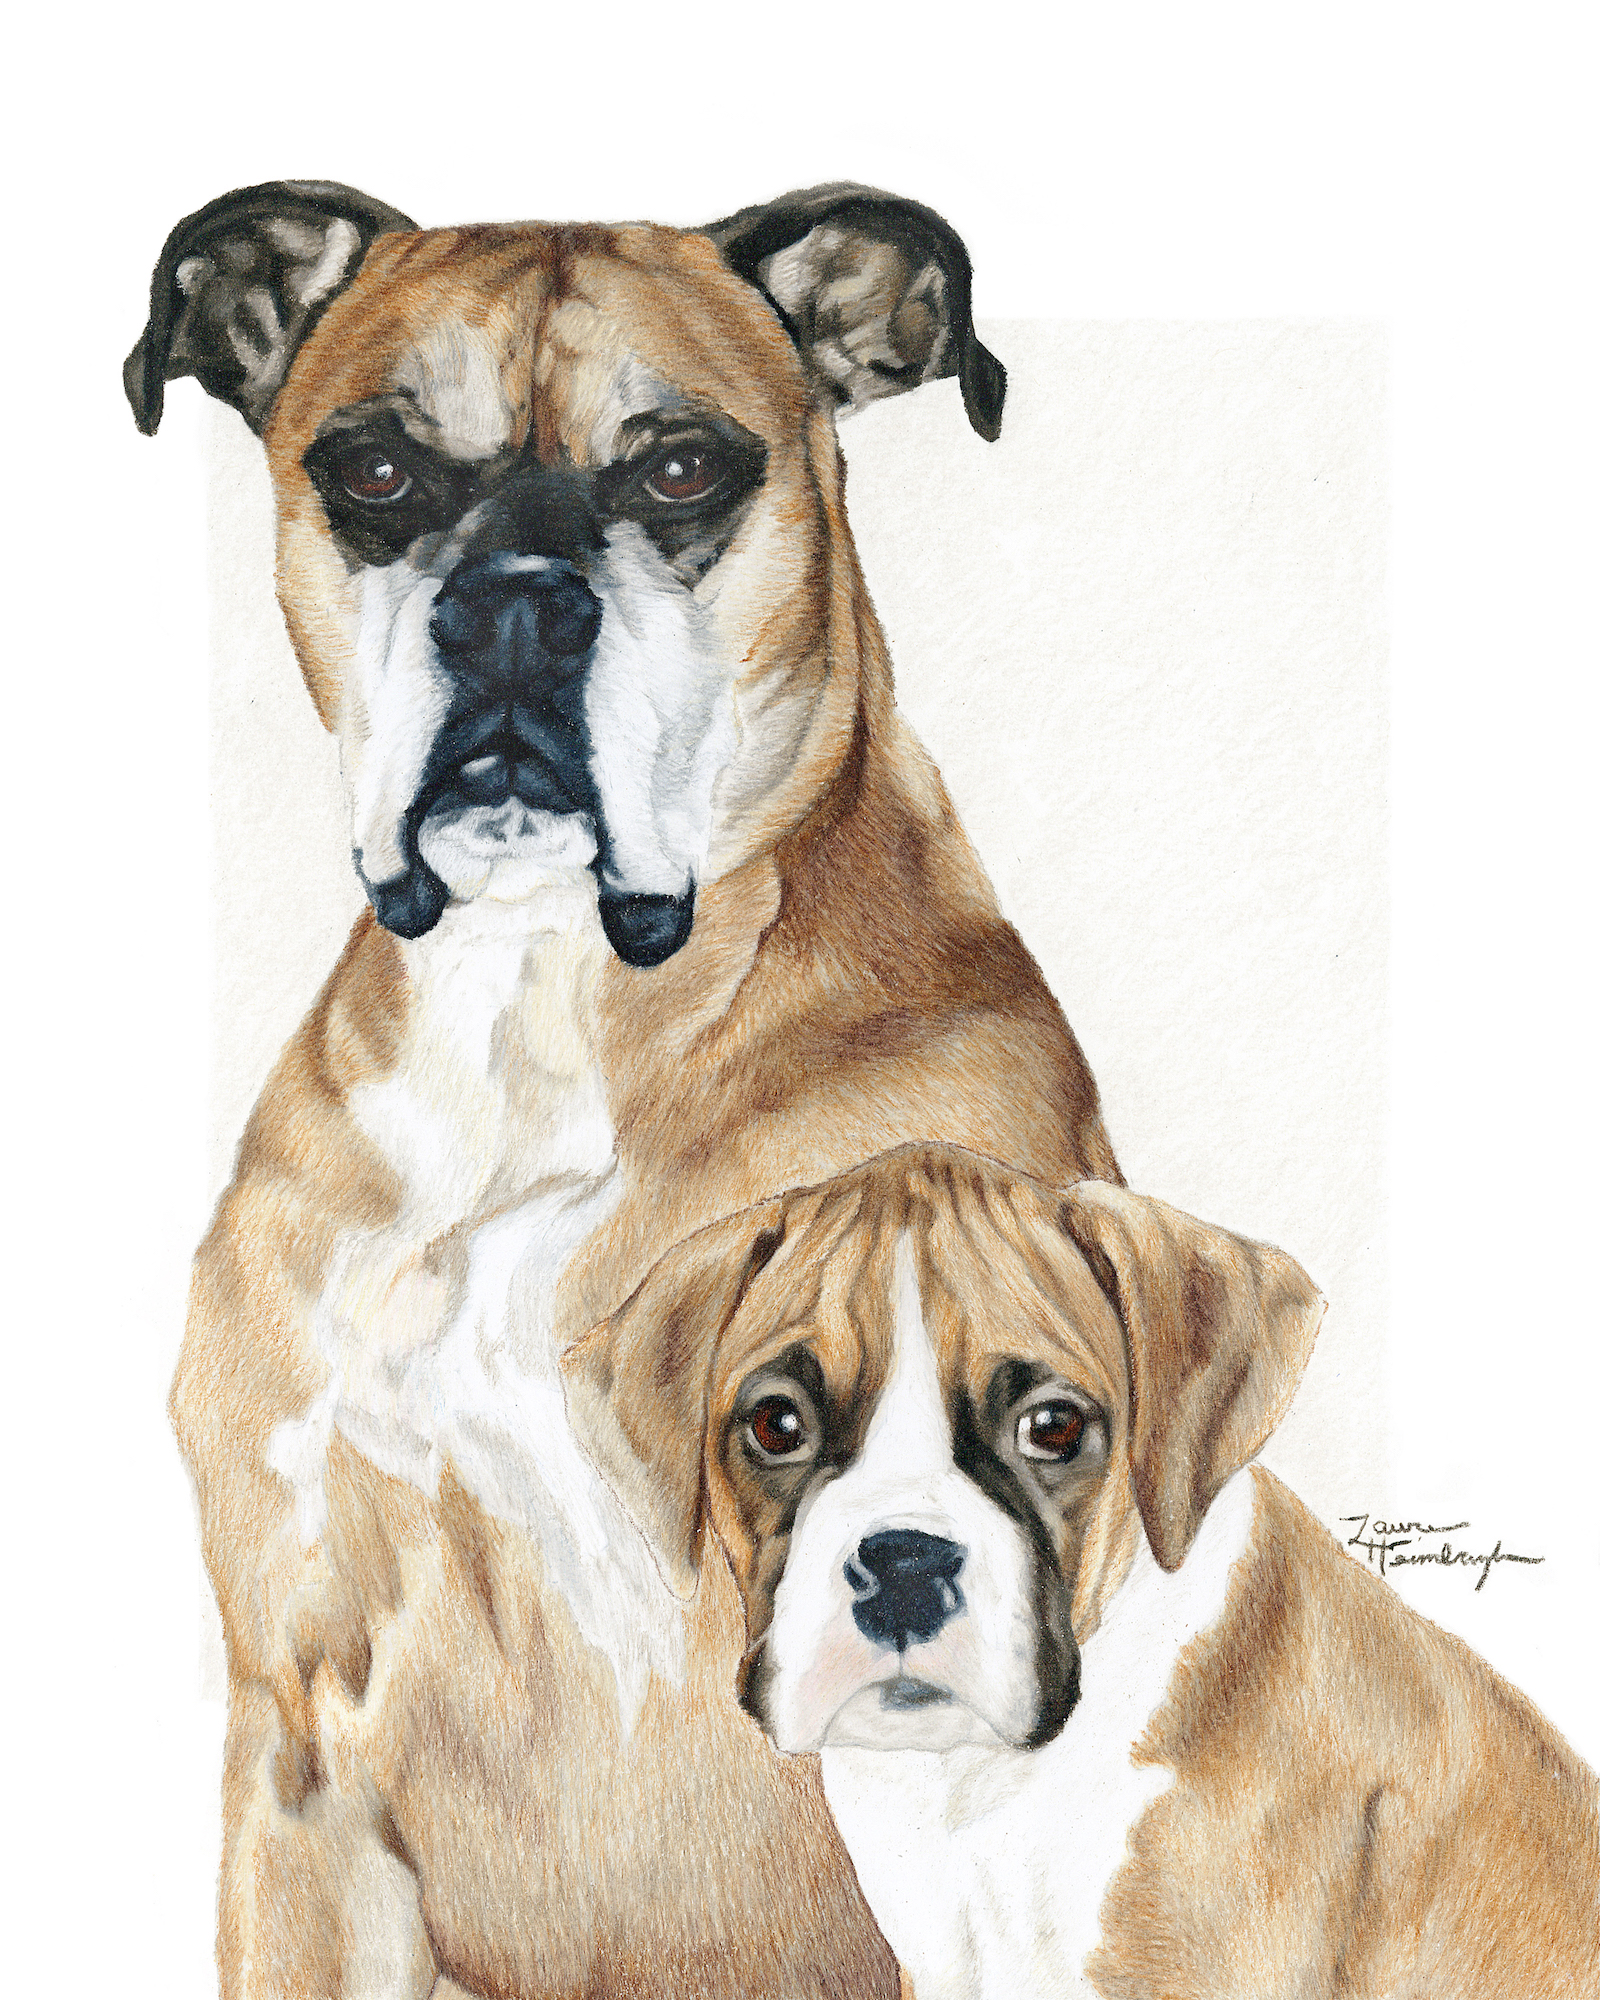 Diesel and Oakley the Boxers (2015)